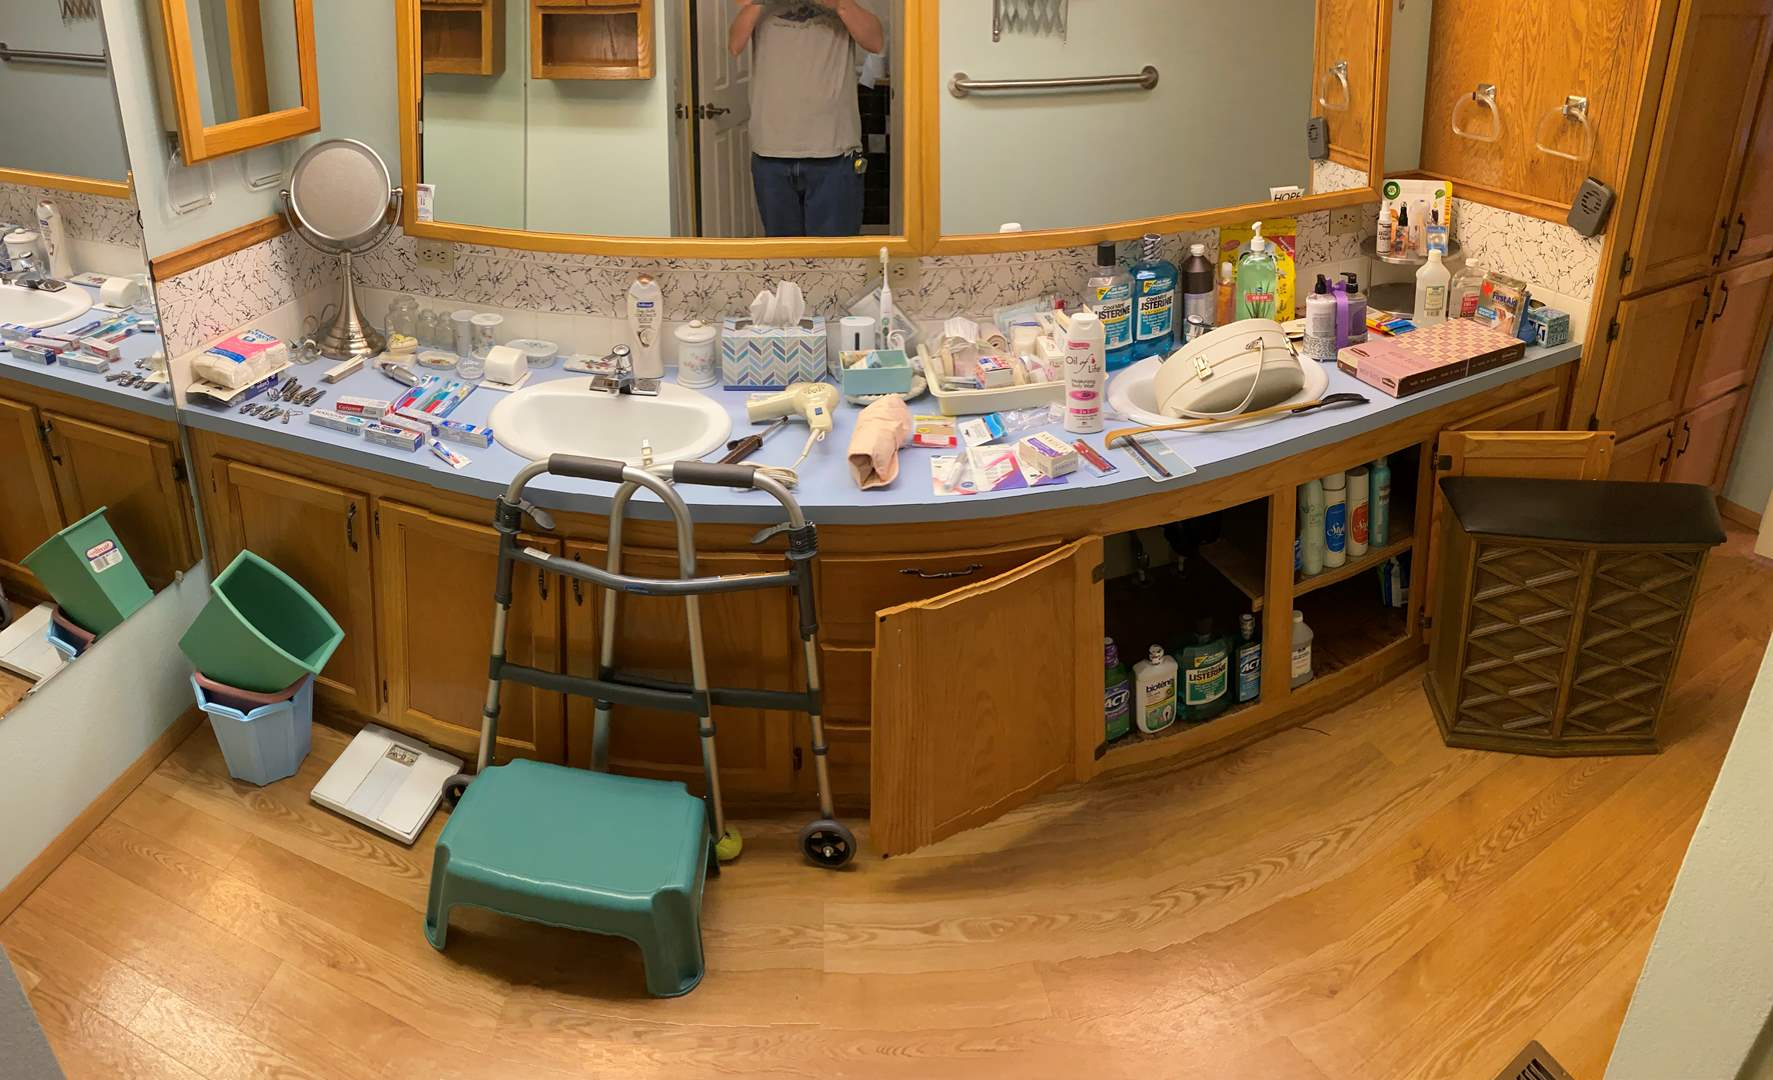 Lot # 171 - Bathroom Contents: Vintage Hamper, Adult Diapers, Mouth Washes, Toothpaste, Sonicare Toothbrush, First Aid & More (main image)